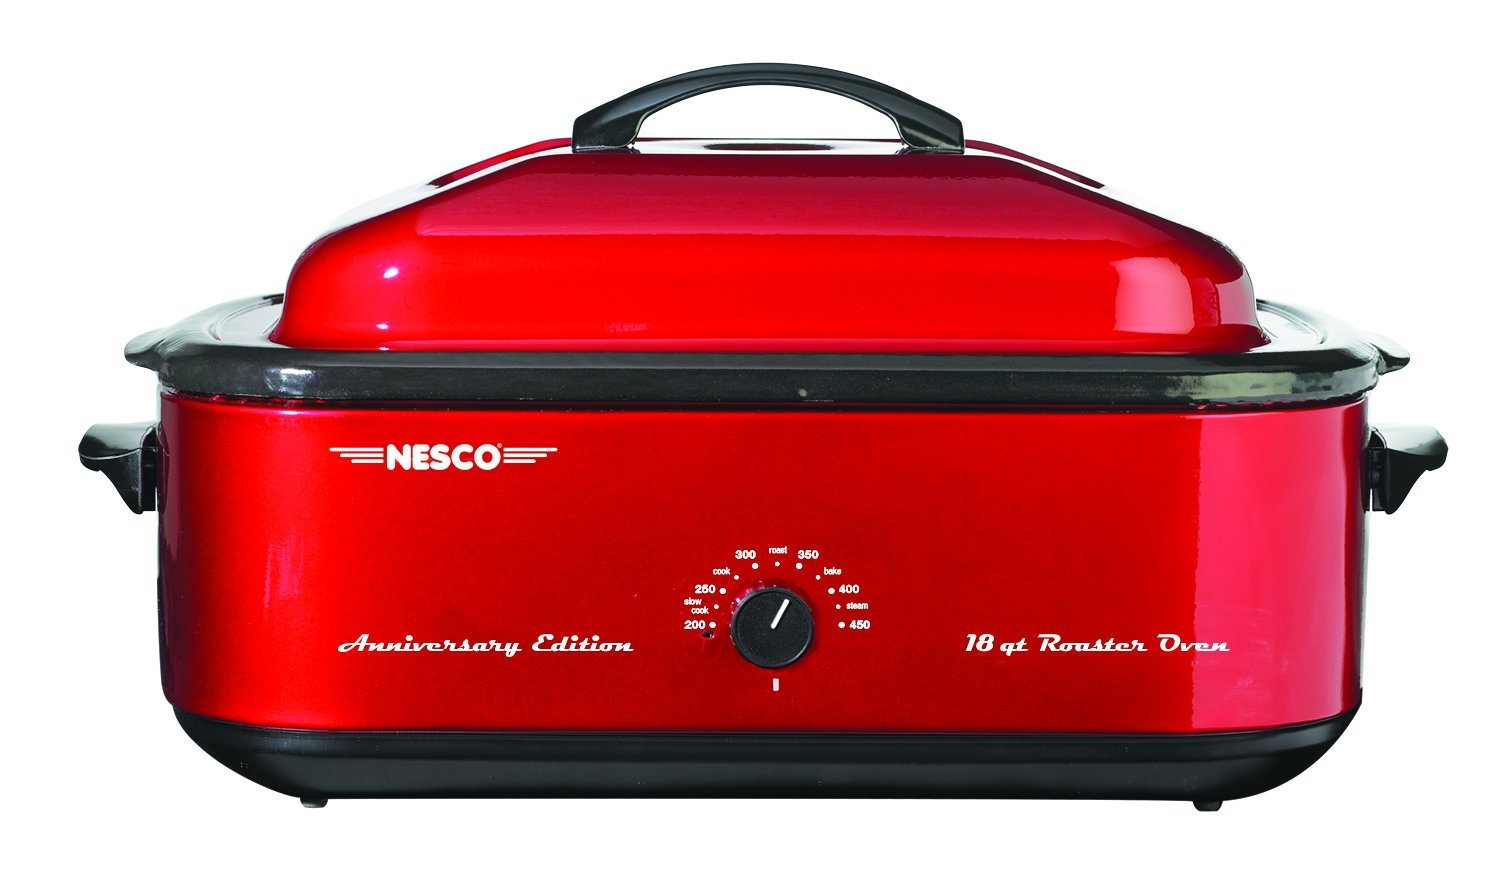 Nesco 4815-12 Roaster Oven with Porcelain Cookwell, 5-Quart, Red